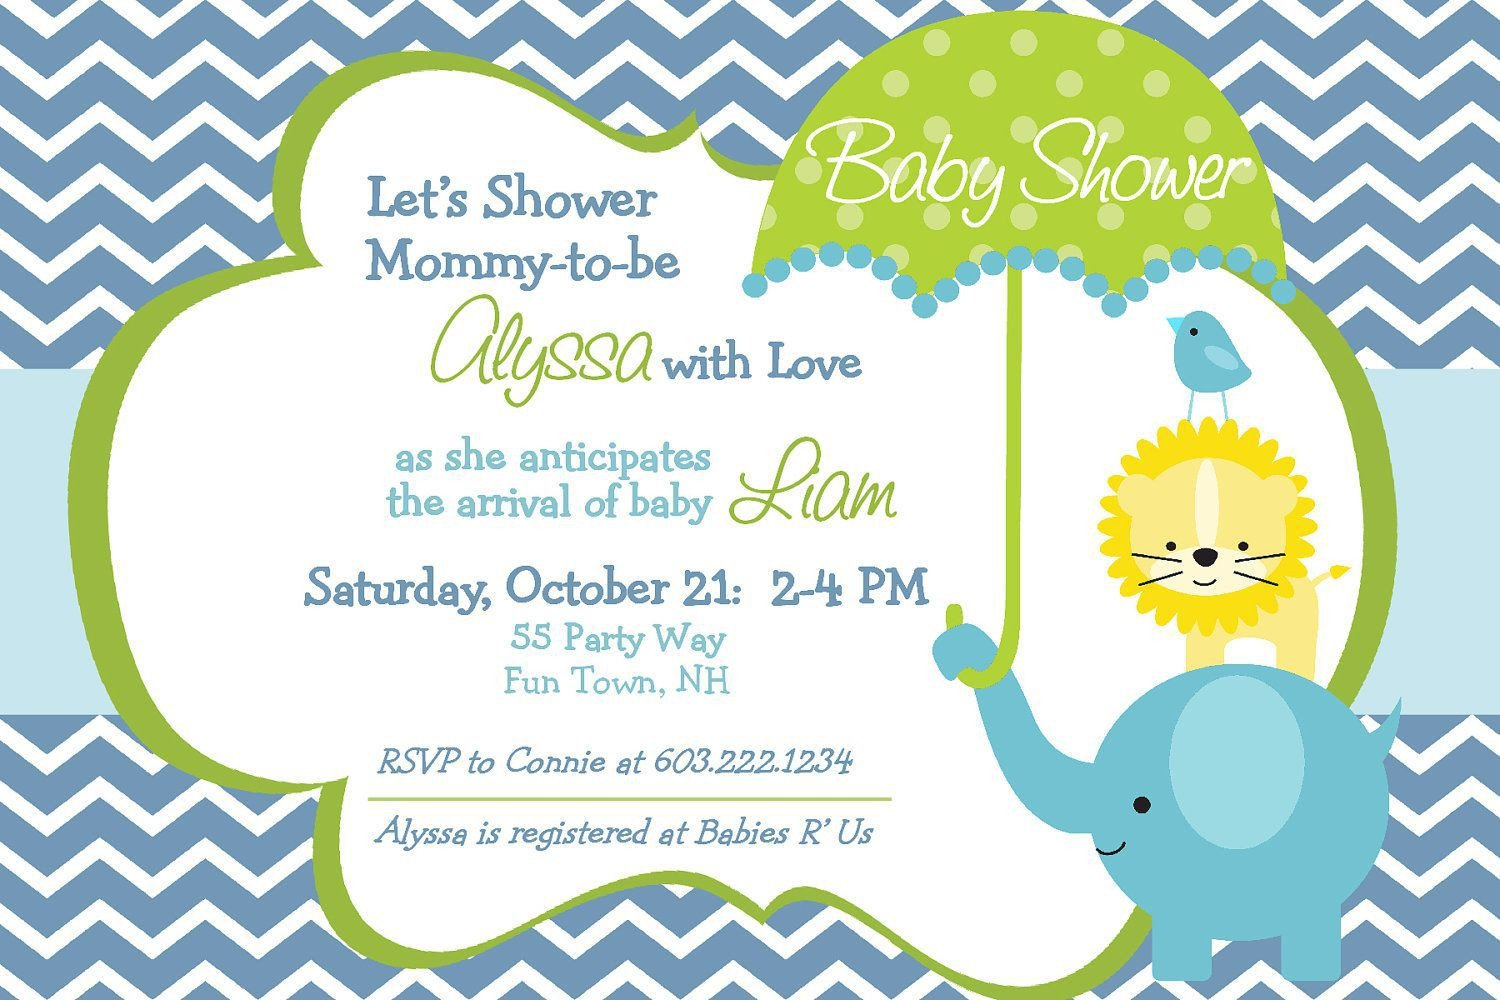 Baby Shower Invitation Template Baby Shower Invitation Templates Baby Shower Invitation